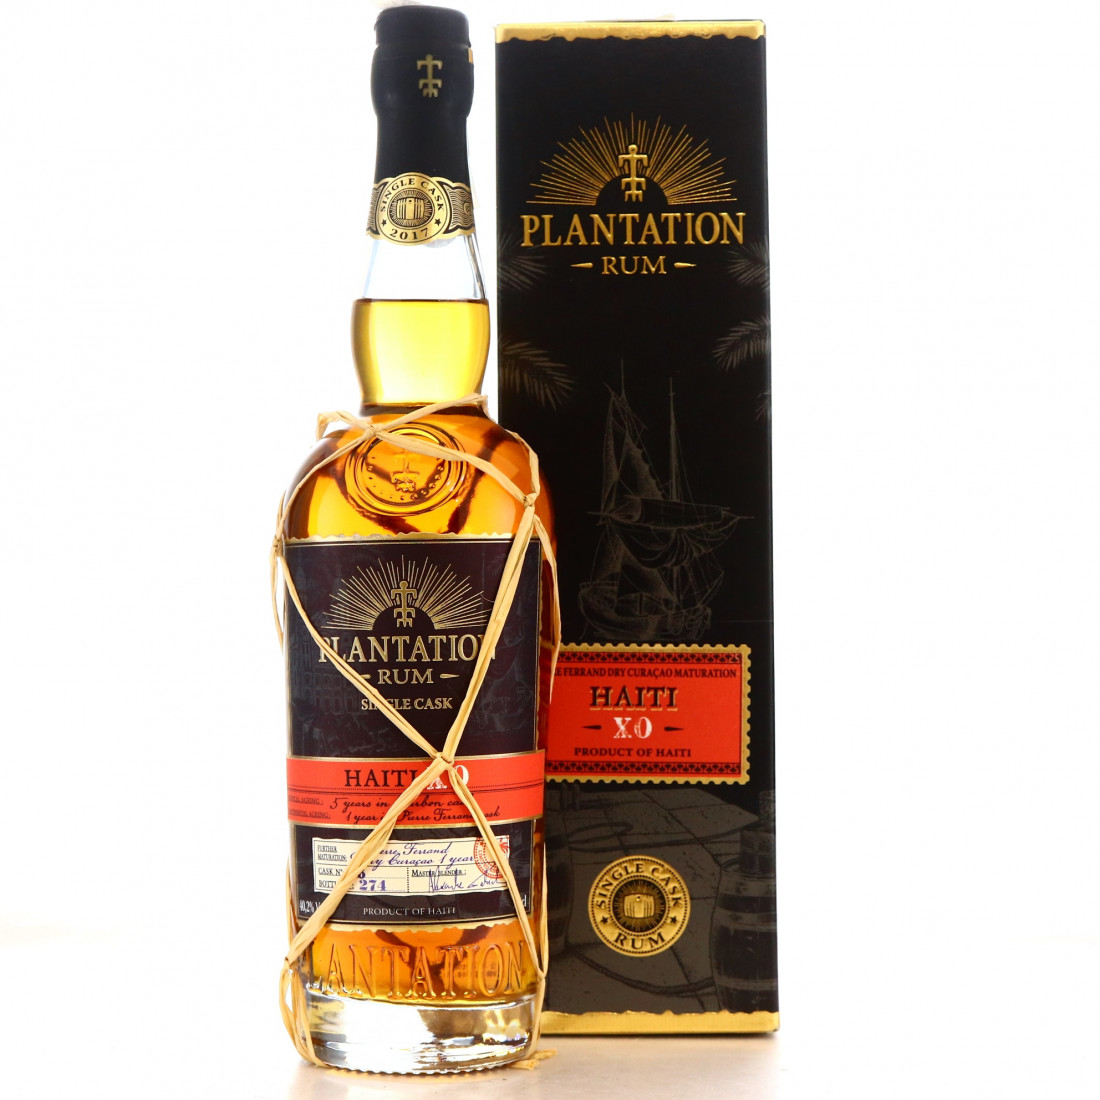 Haiti Rum XO Plantation Single Cask #8